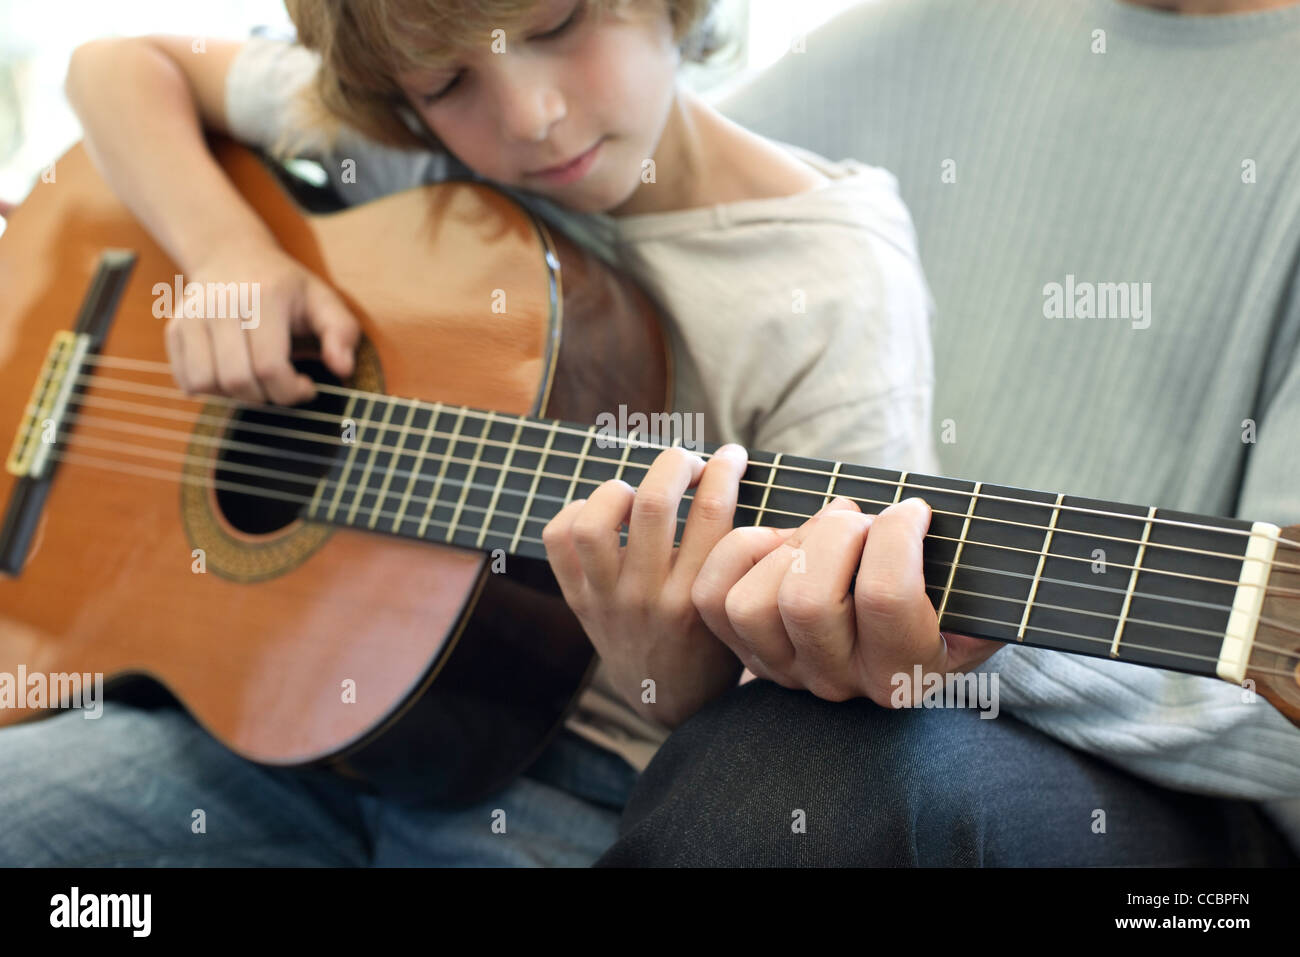 Boy learning how to play guitar with father Stock Photo